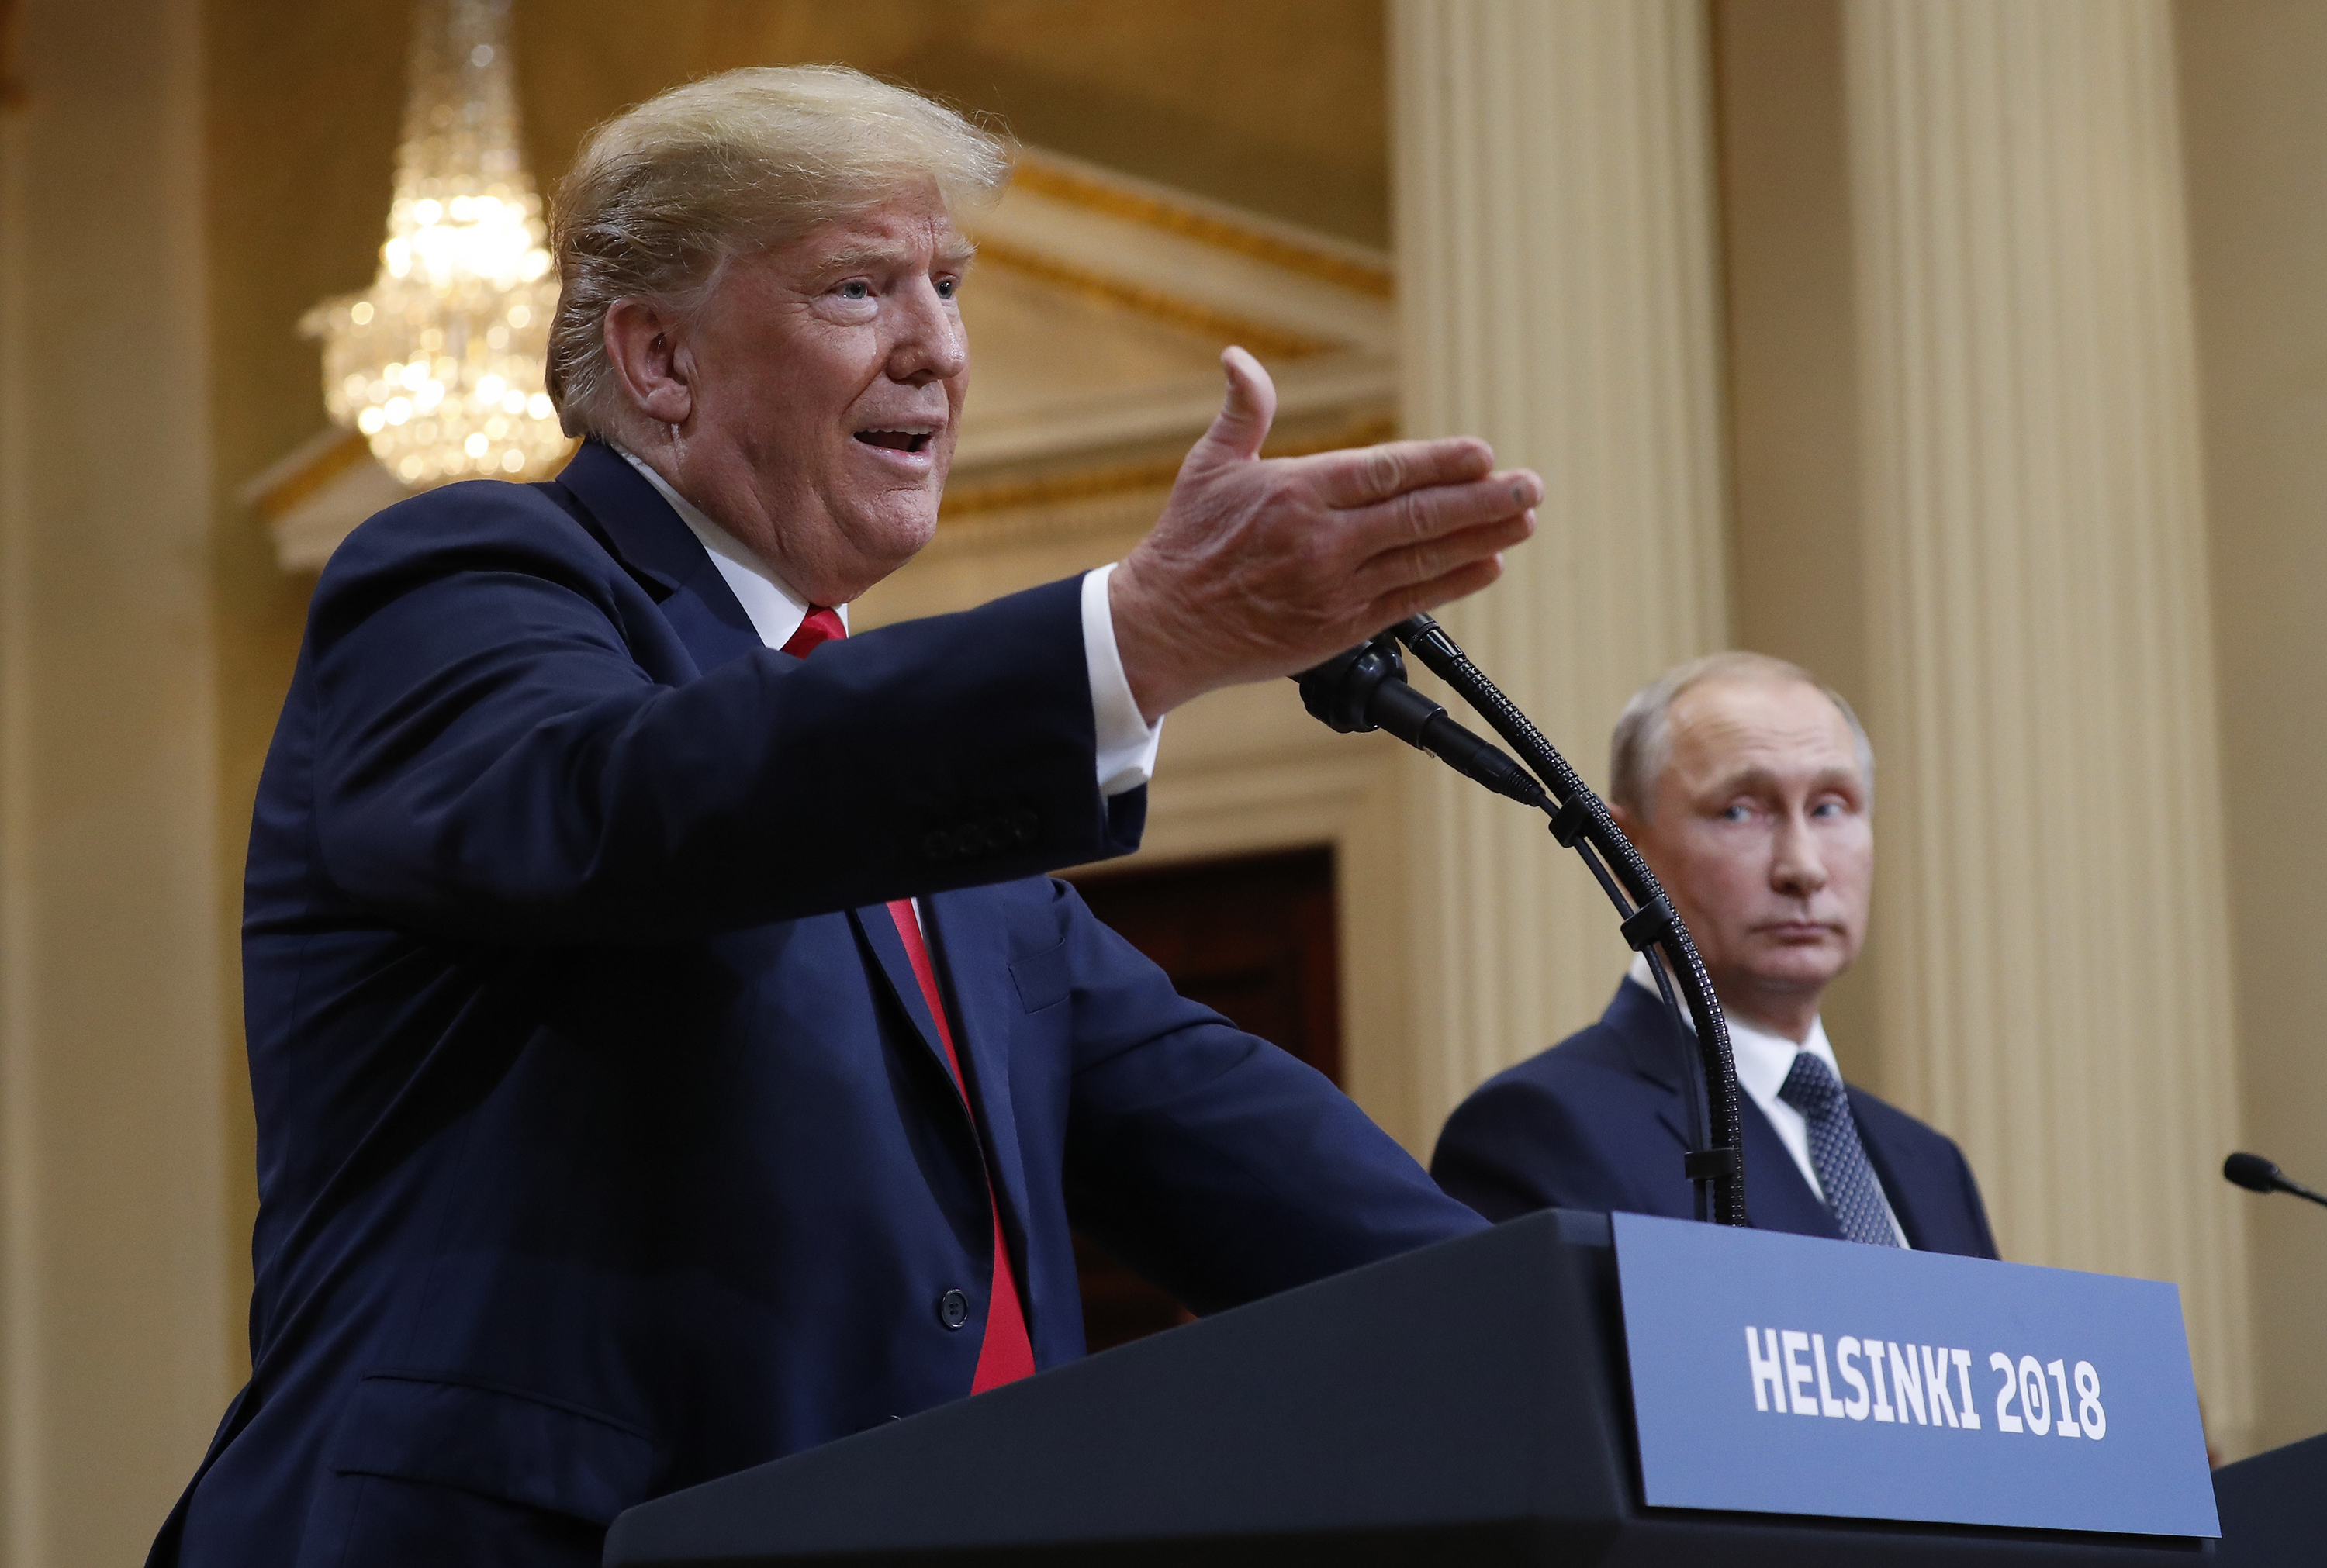 <p>U.S. President Donald Trump, left, and Russian President Vladimir Putin at a joint press conference in Helsinki, Finland, on Monday July 16, 2018.</p>